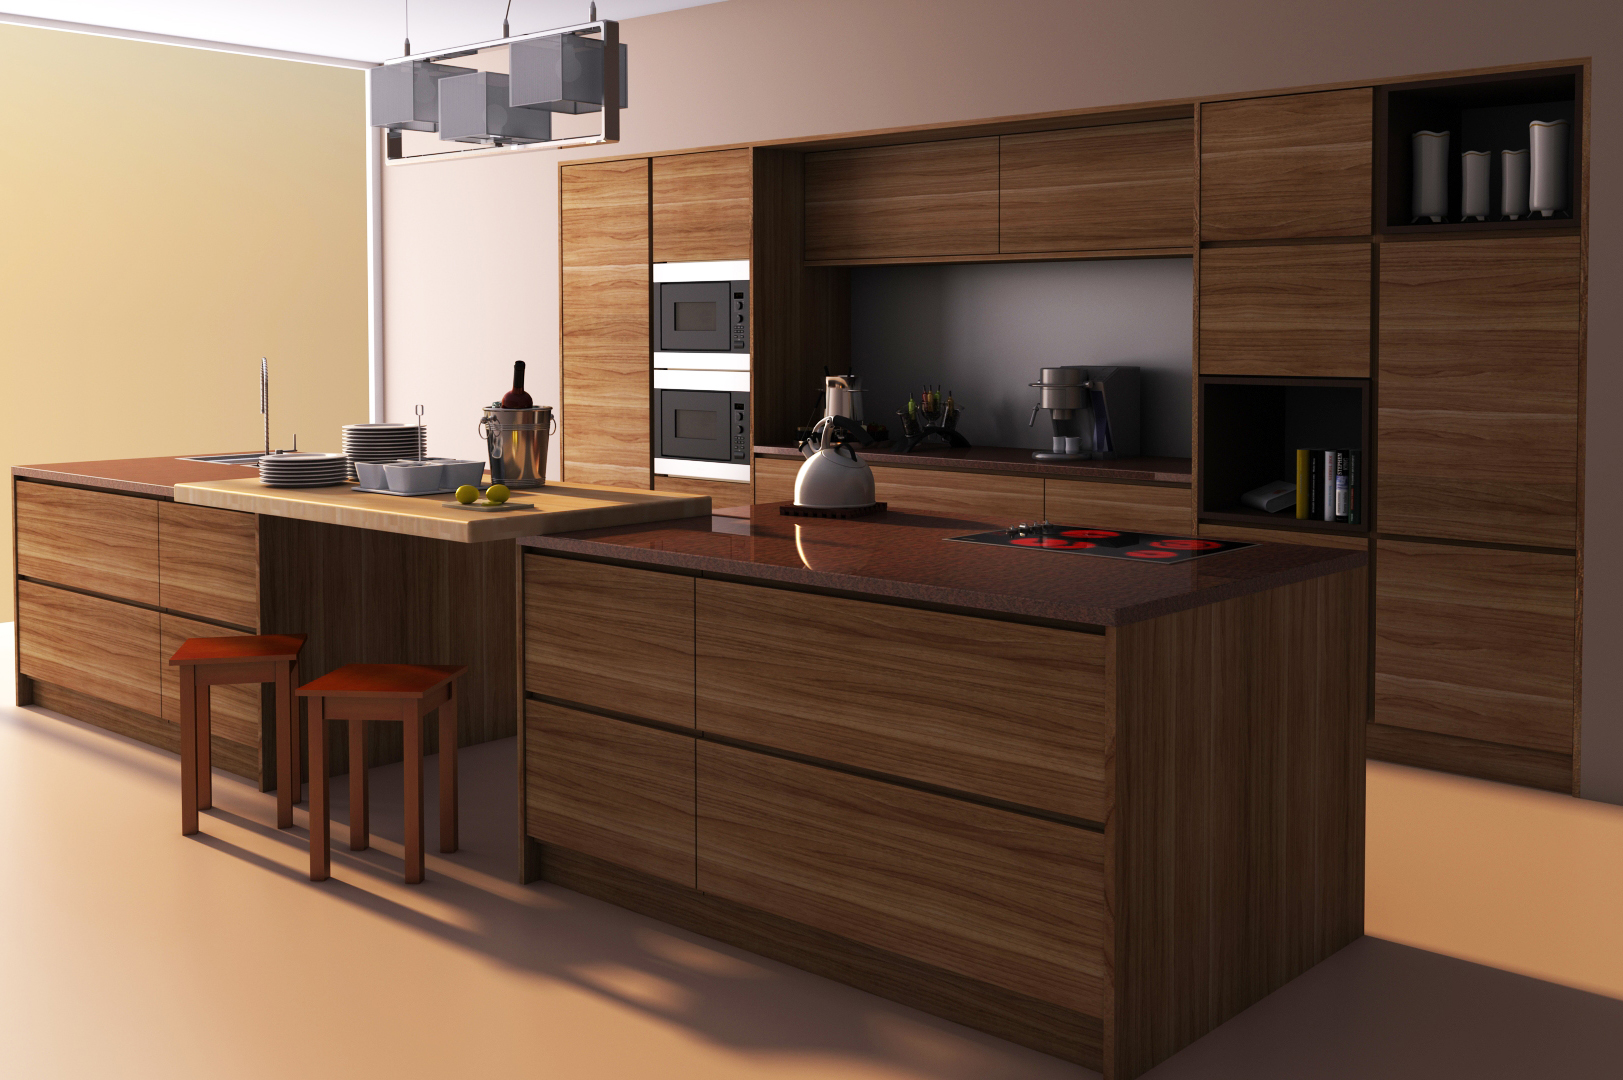 Modern kitchen 3d model max for Kitchen modeler